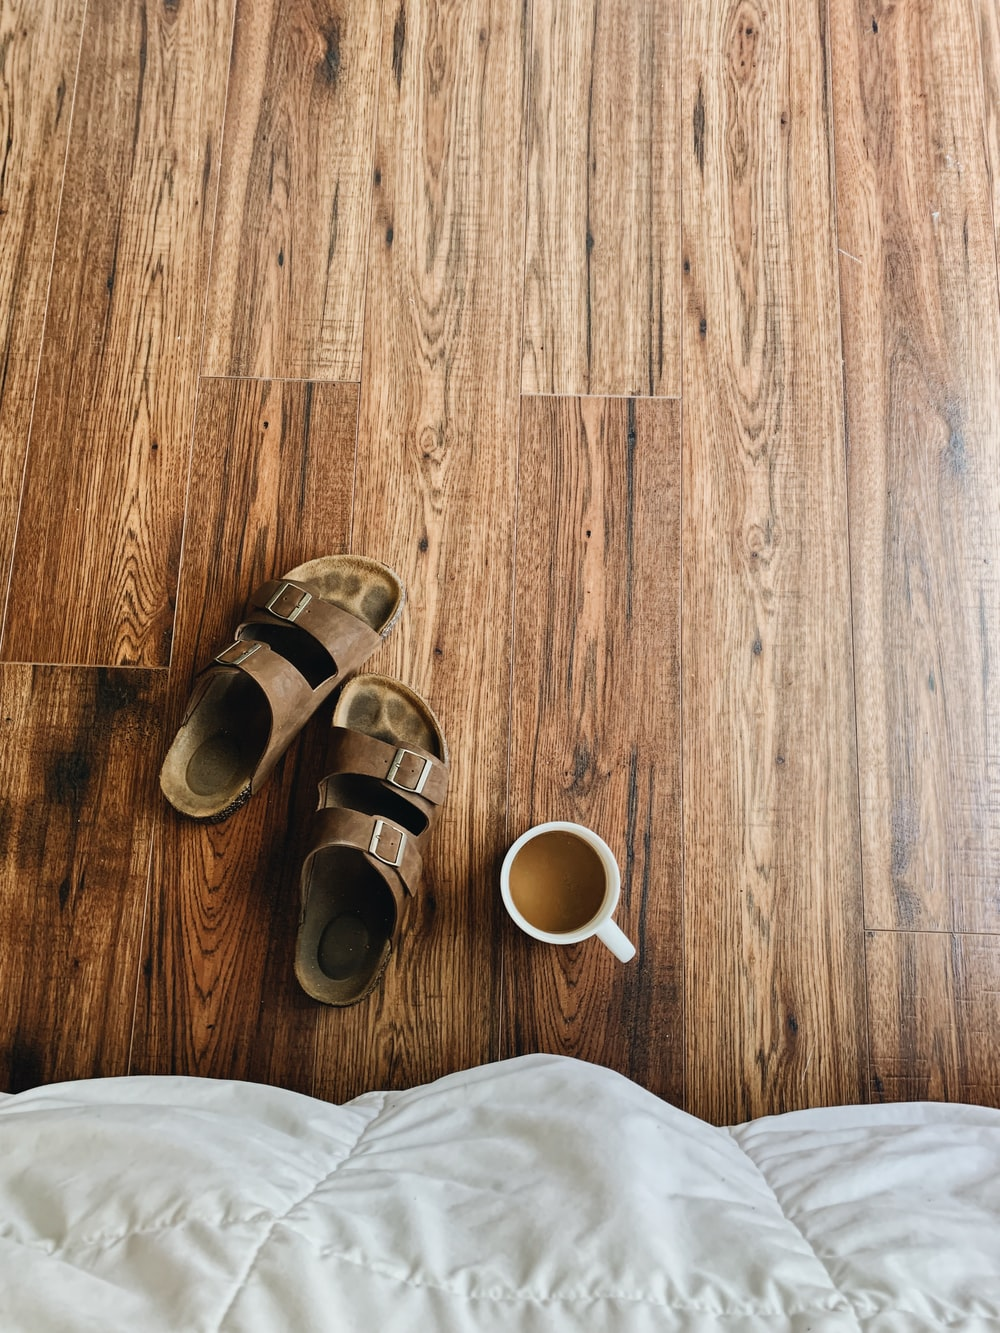 brown and black sandals on brown wooden floor